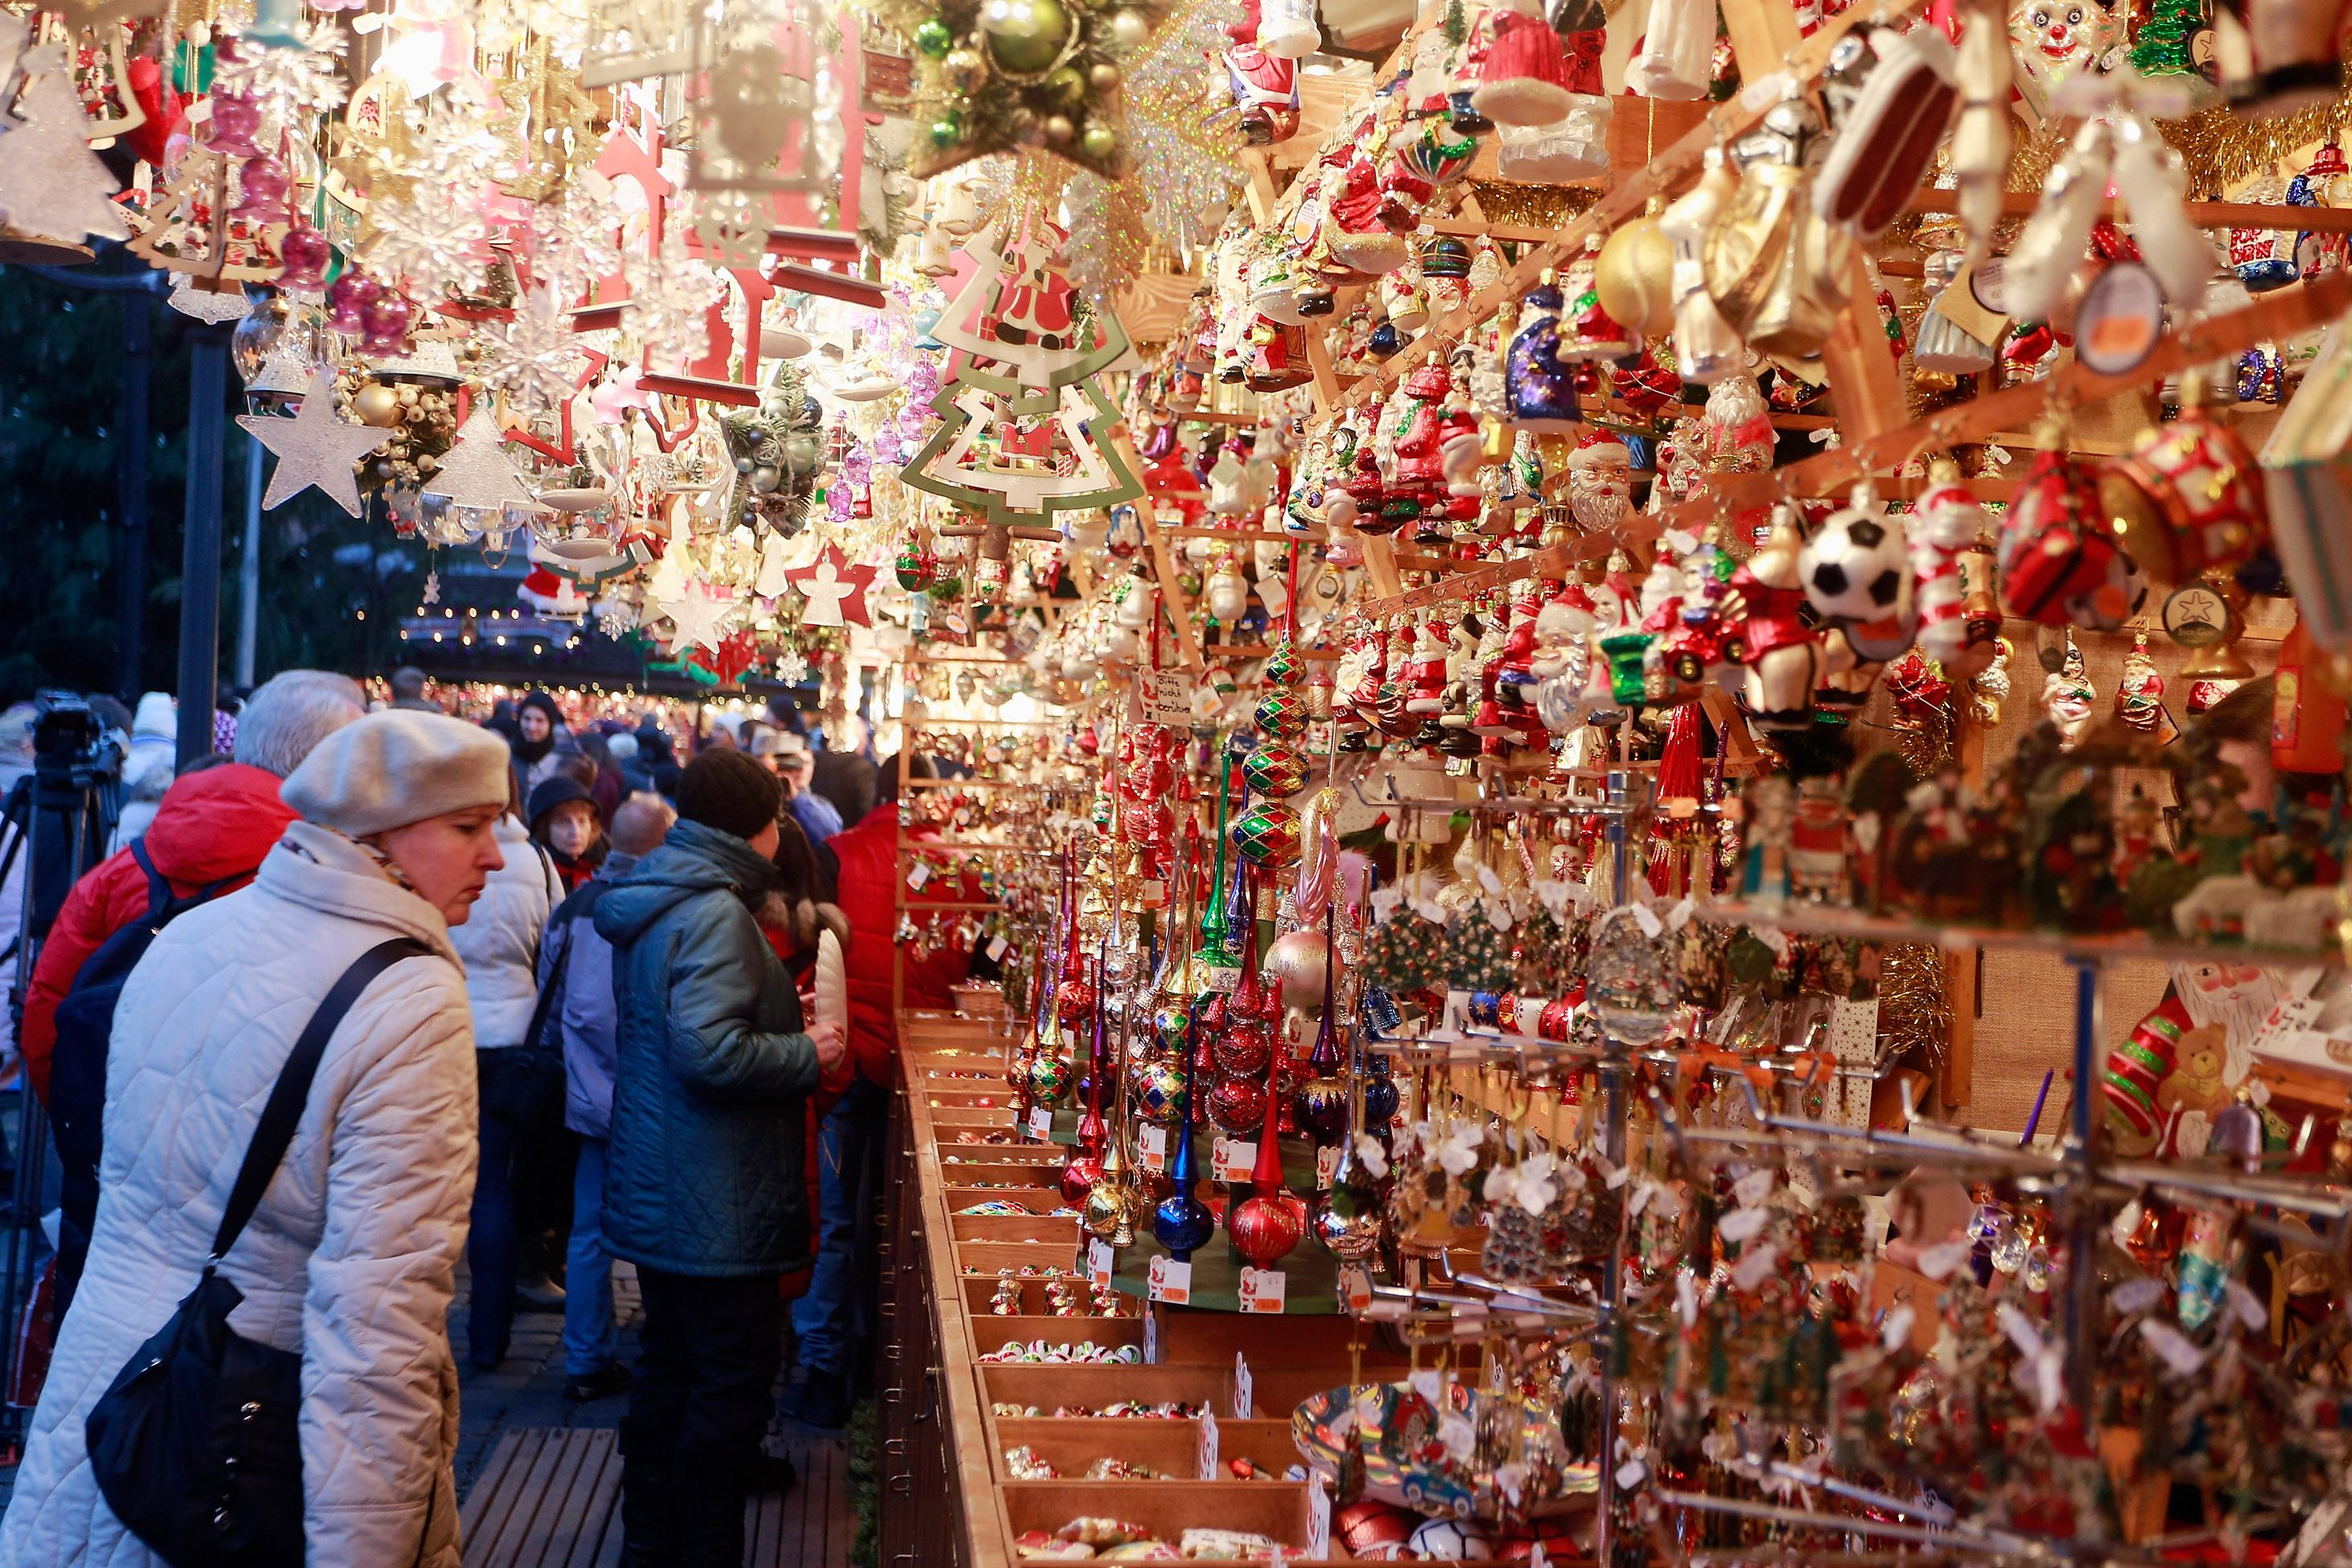 Visitors look at Christmas decorations for sale at the traditional Christmas market 'Nuernberger Christkindlesmarkt' ahead of the opening ceremony in Nuremberg, Germany..